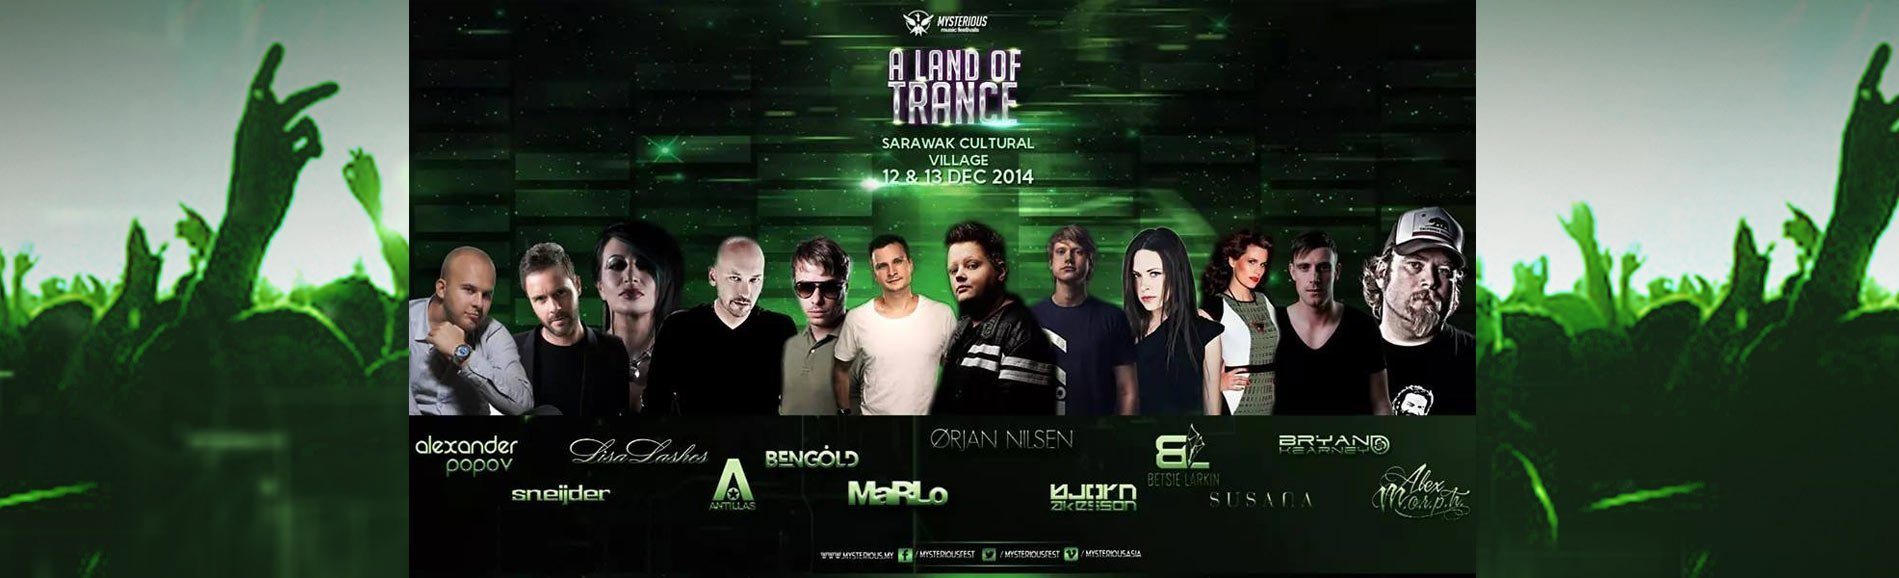 A Land Of Trance 2014: The Biggest Trance Event In Borneo!